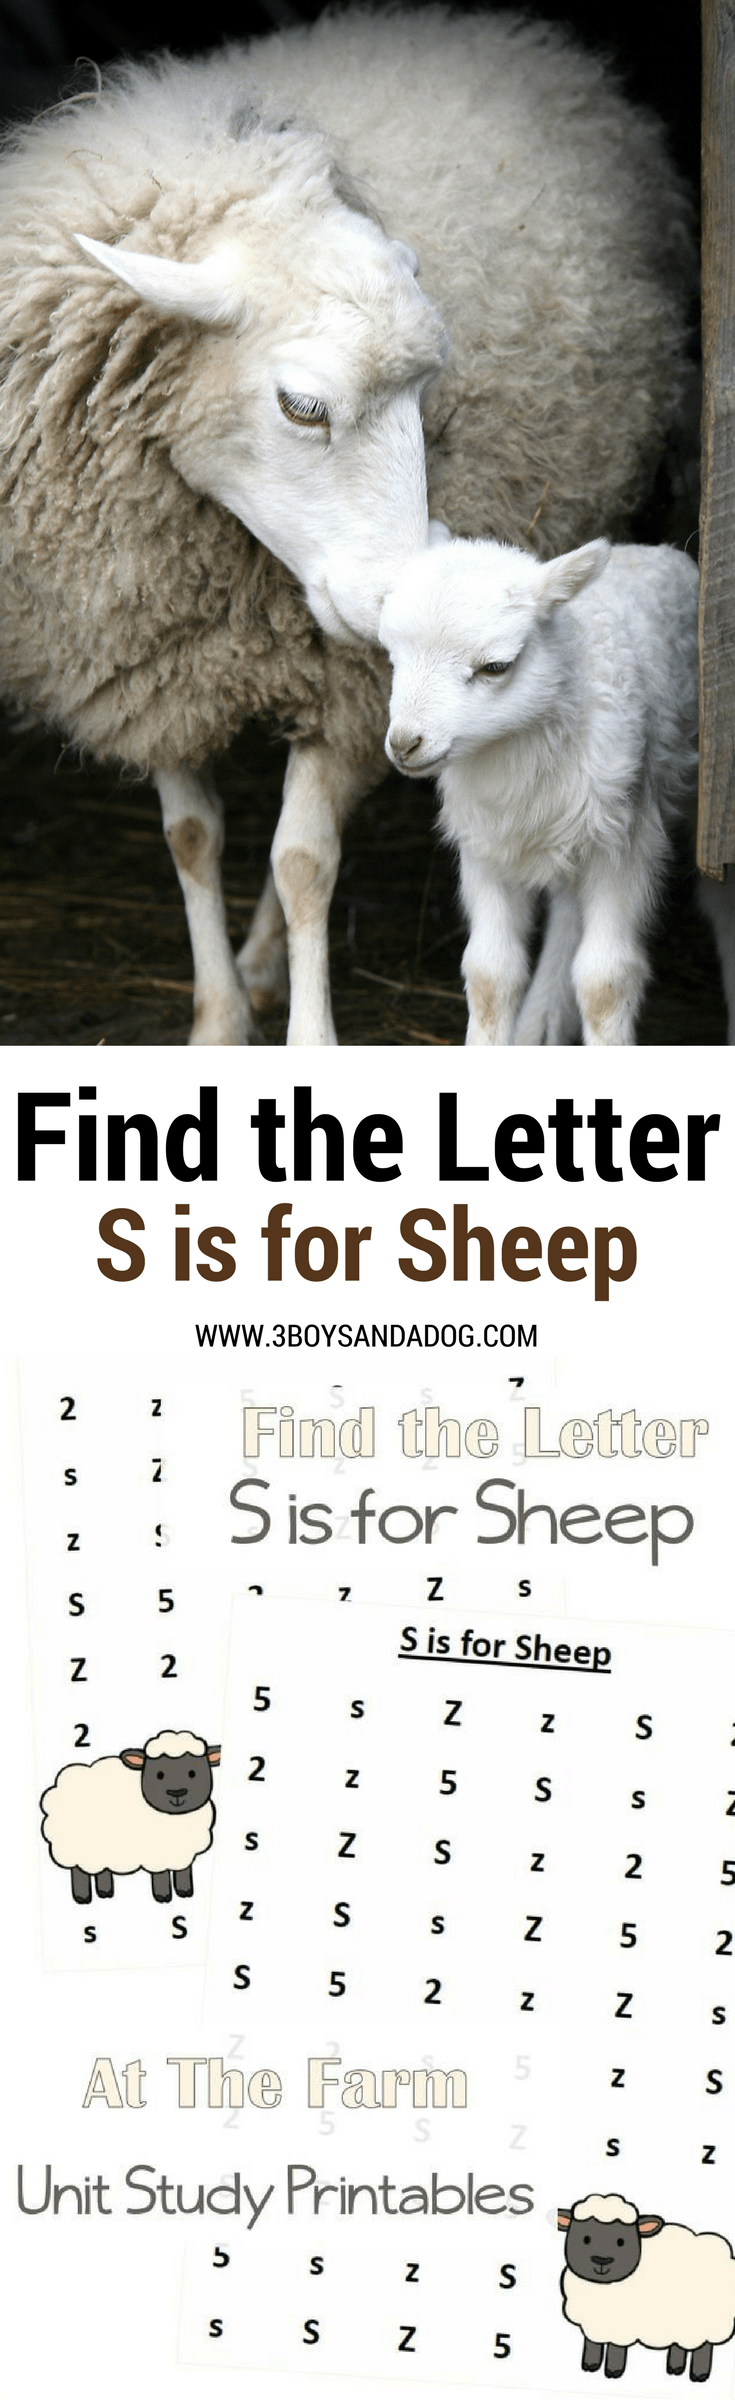 These Find the Letter Printables: S is for Sheep will help your preschool and early-elementary aged children work on recognizing the letter S among many other letters of the alphabet. Great for fine motor and alphabet recognition.